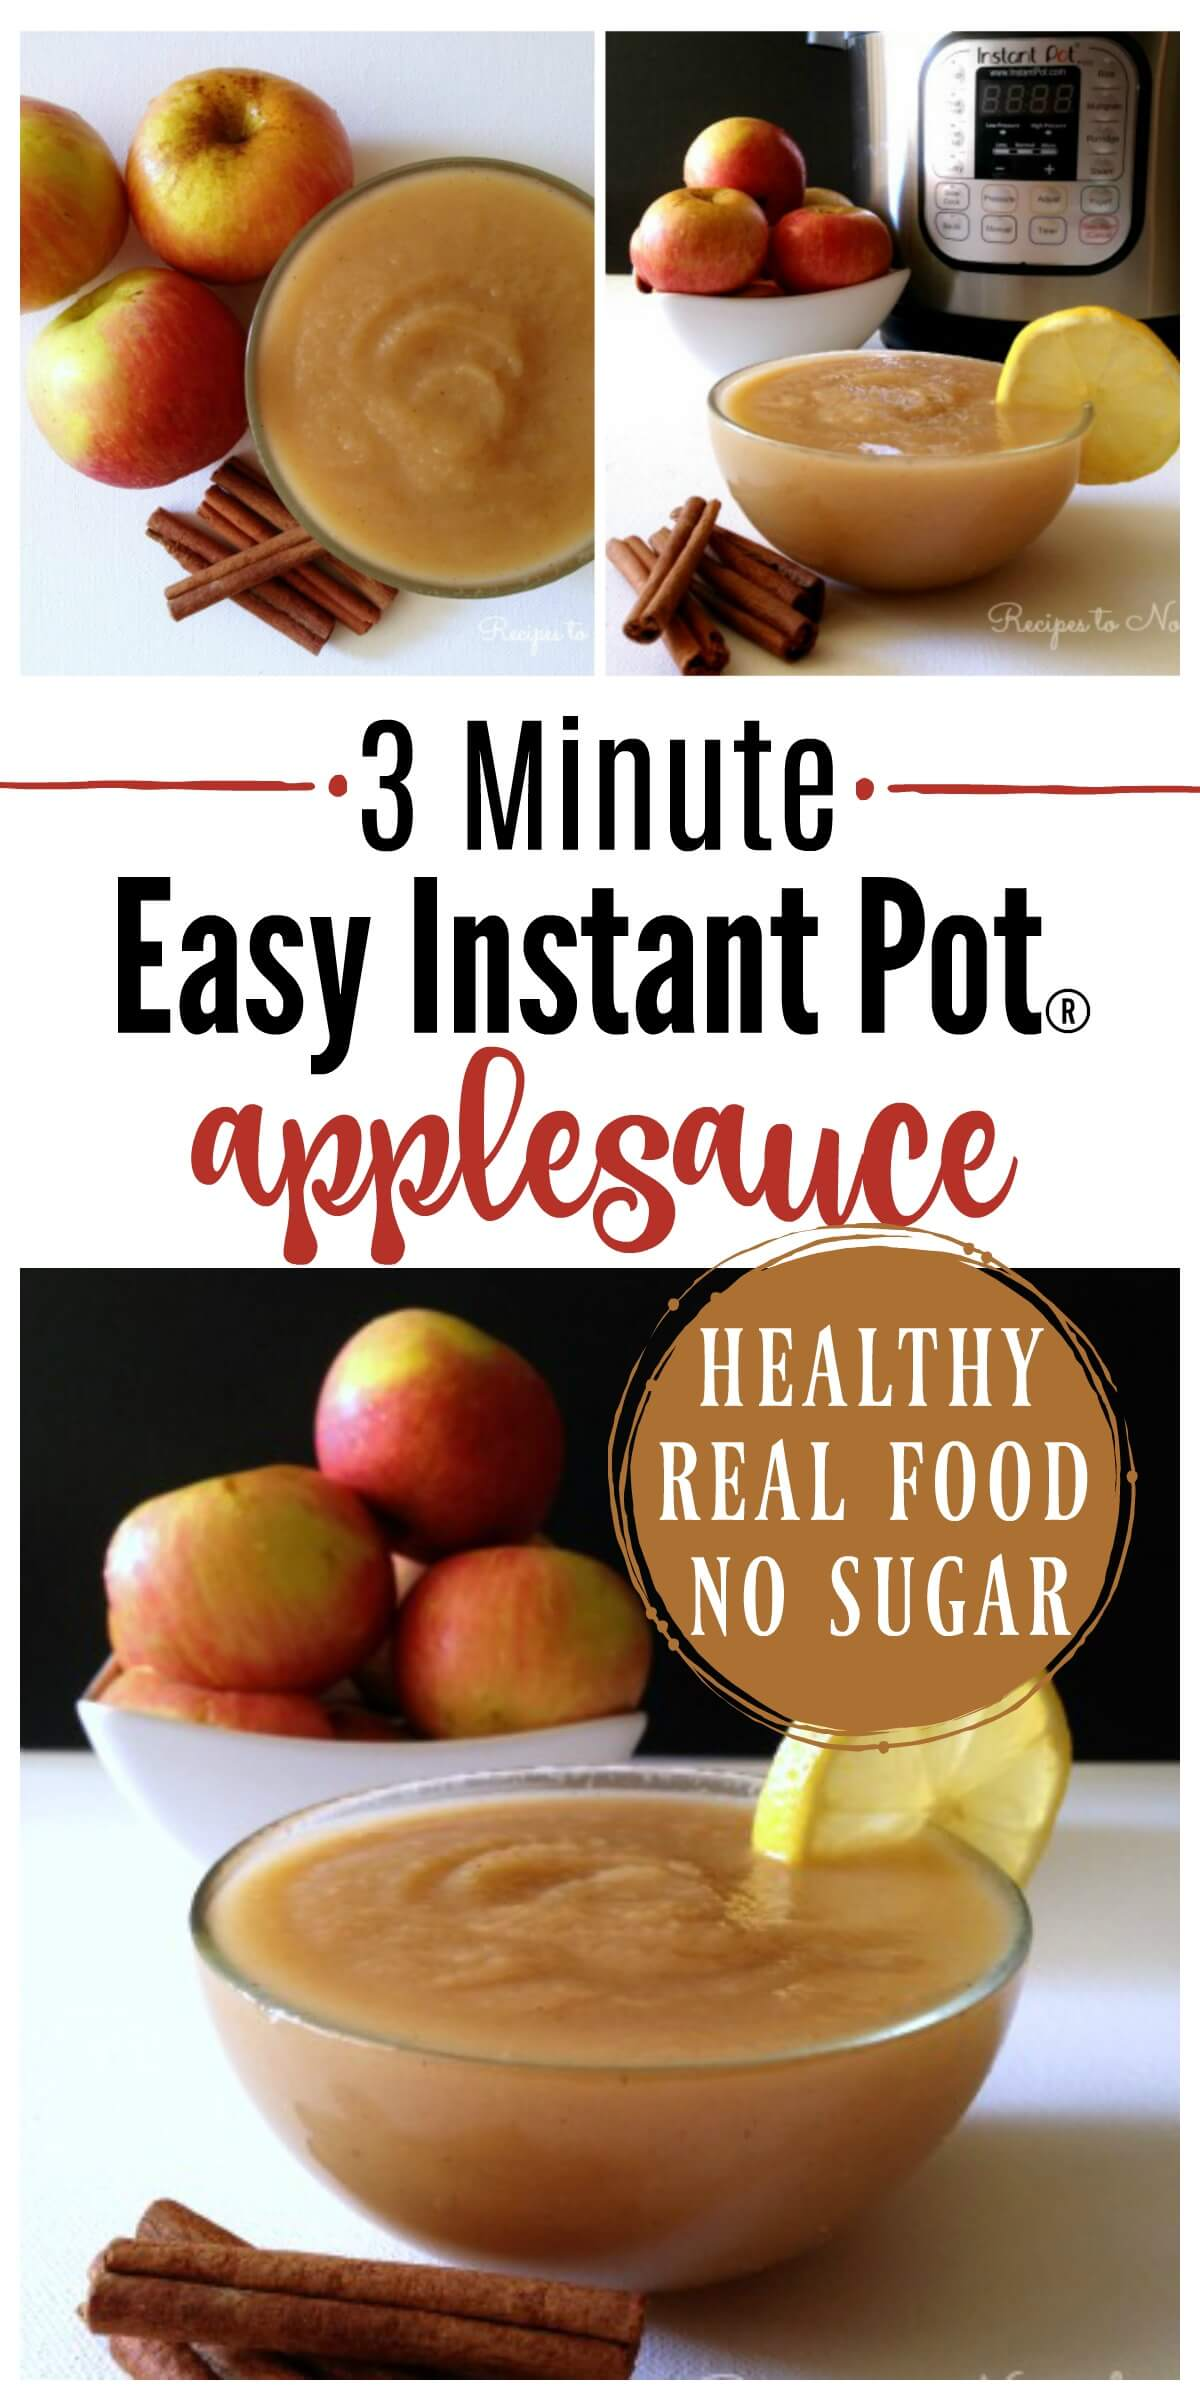 3 Minute Instant Pot Applesauce! If you love applesauce, you've got to try this method. It's absolutely delicious and comes out perfect every time. | Recipes to Nourish // Instant Pot Recipes | Sugar Free Applesauce | Healthy Applesauce | Gluten Free Recipes | Grain Free Recipes | Healthy Snack Recipes